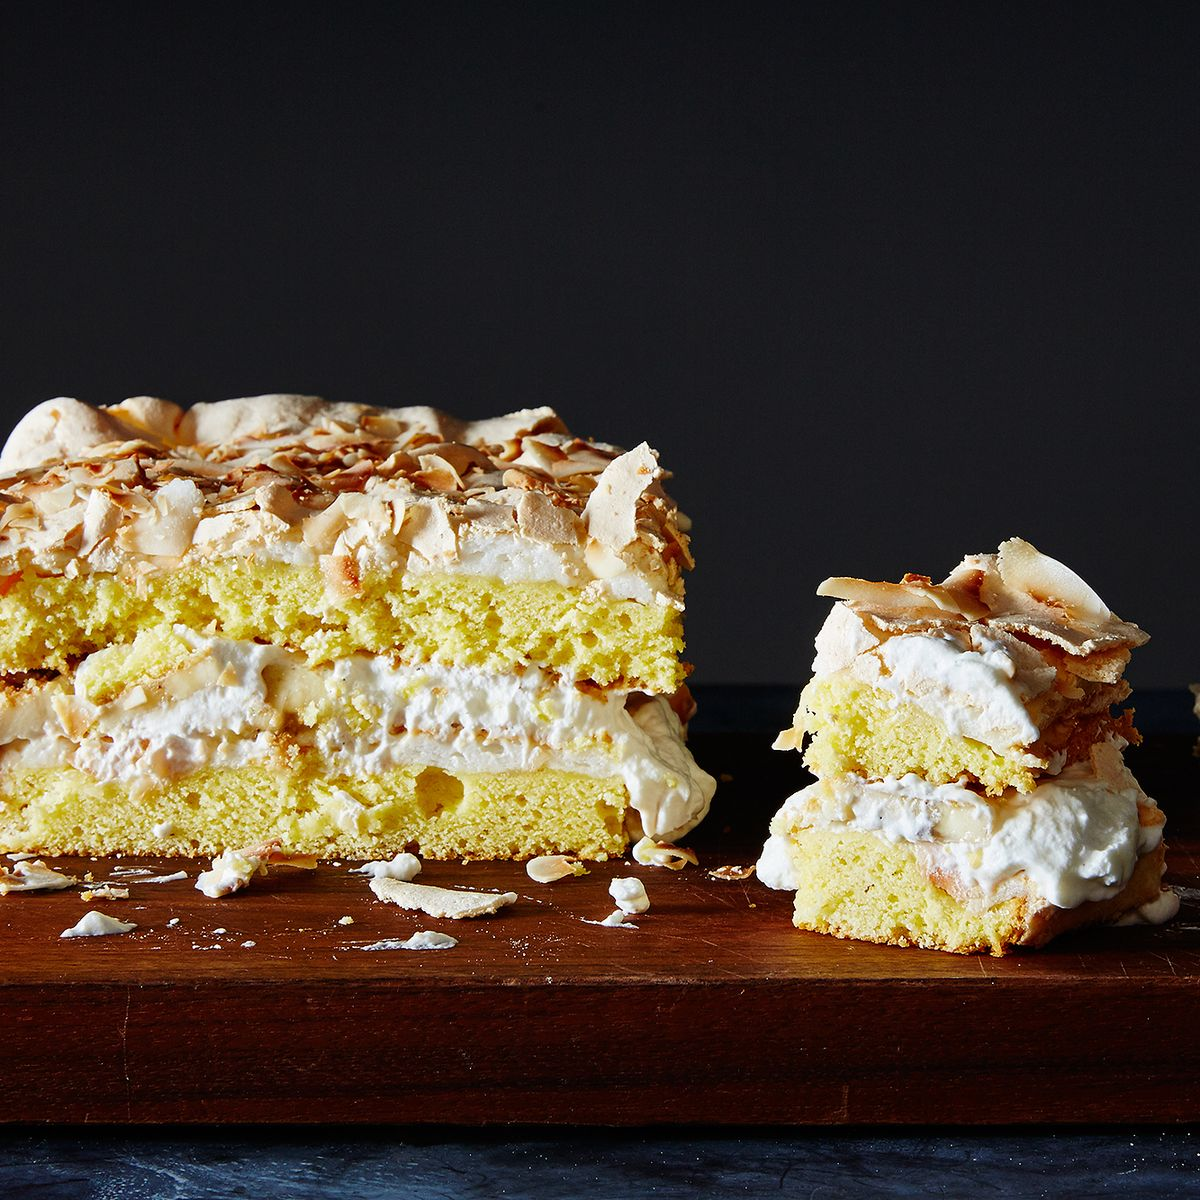 World S Best Cake With Banana Coconut Recipe On Food52